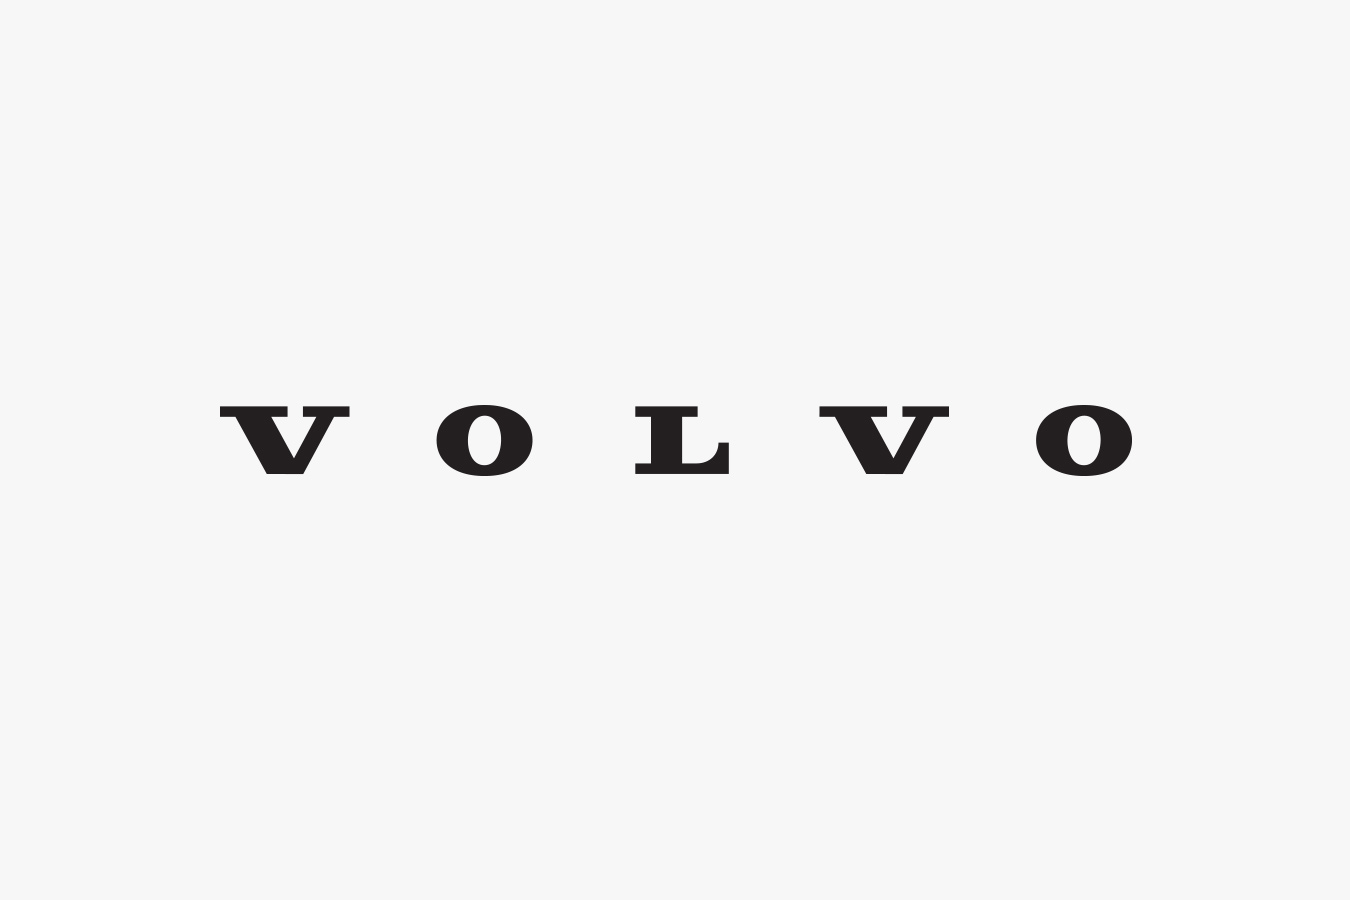 David Ibison, Global Head of Media Relations at Volvo Cars as of January 1, 2014